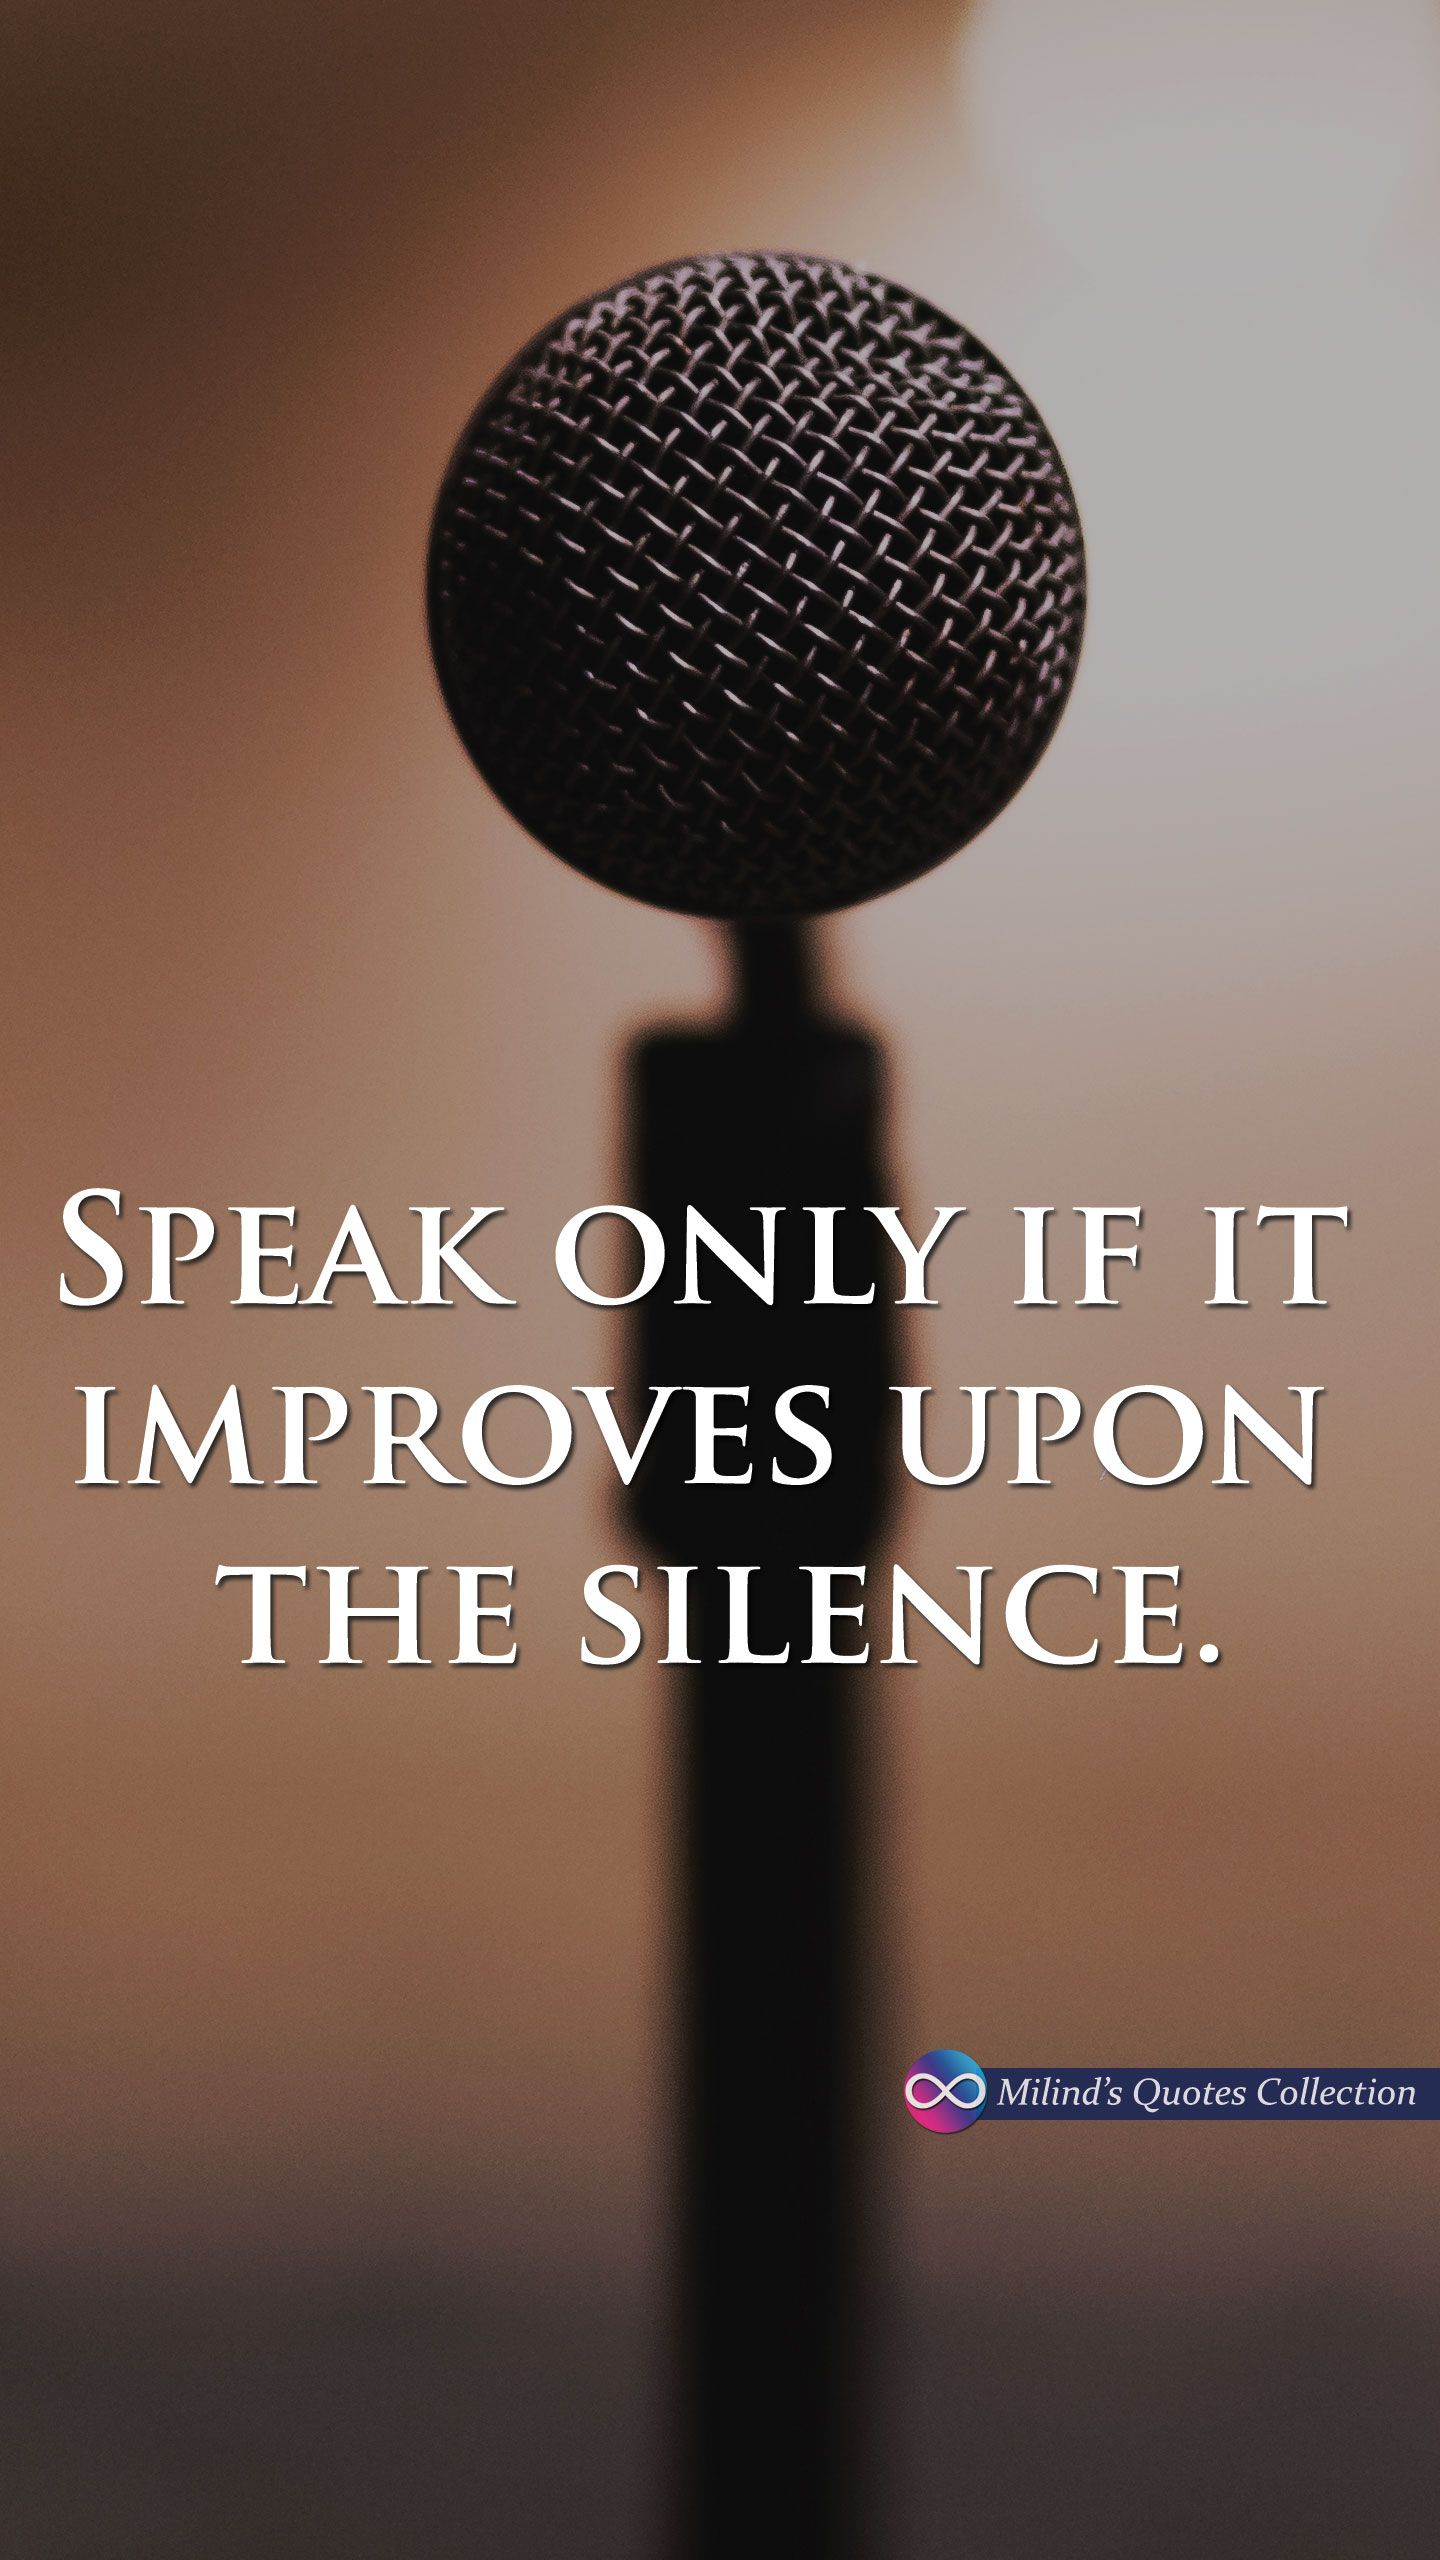 Image result for Speak only if it improves upon the silence